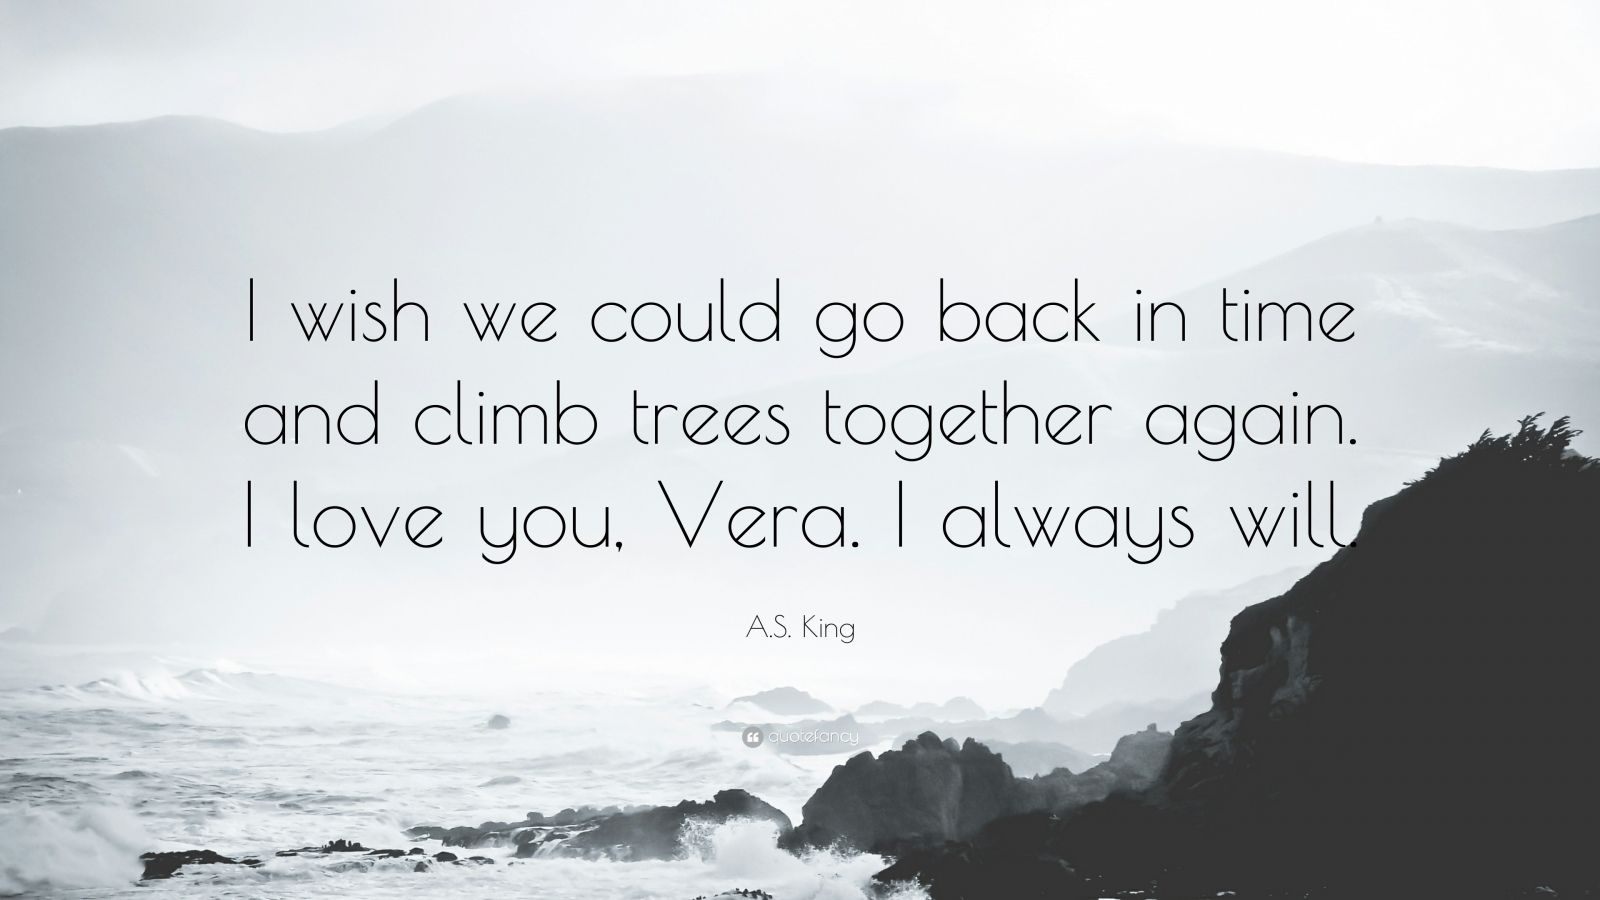 """A.S. King Quote: """"I wish we could go back in time and climb trees together again. I love you, Vera. I always will."""""""